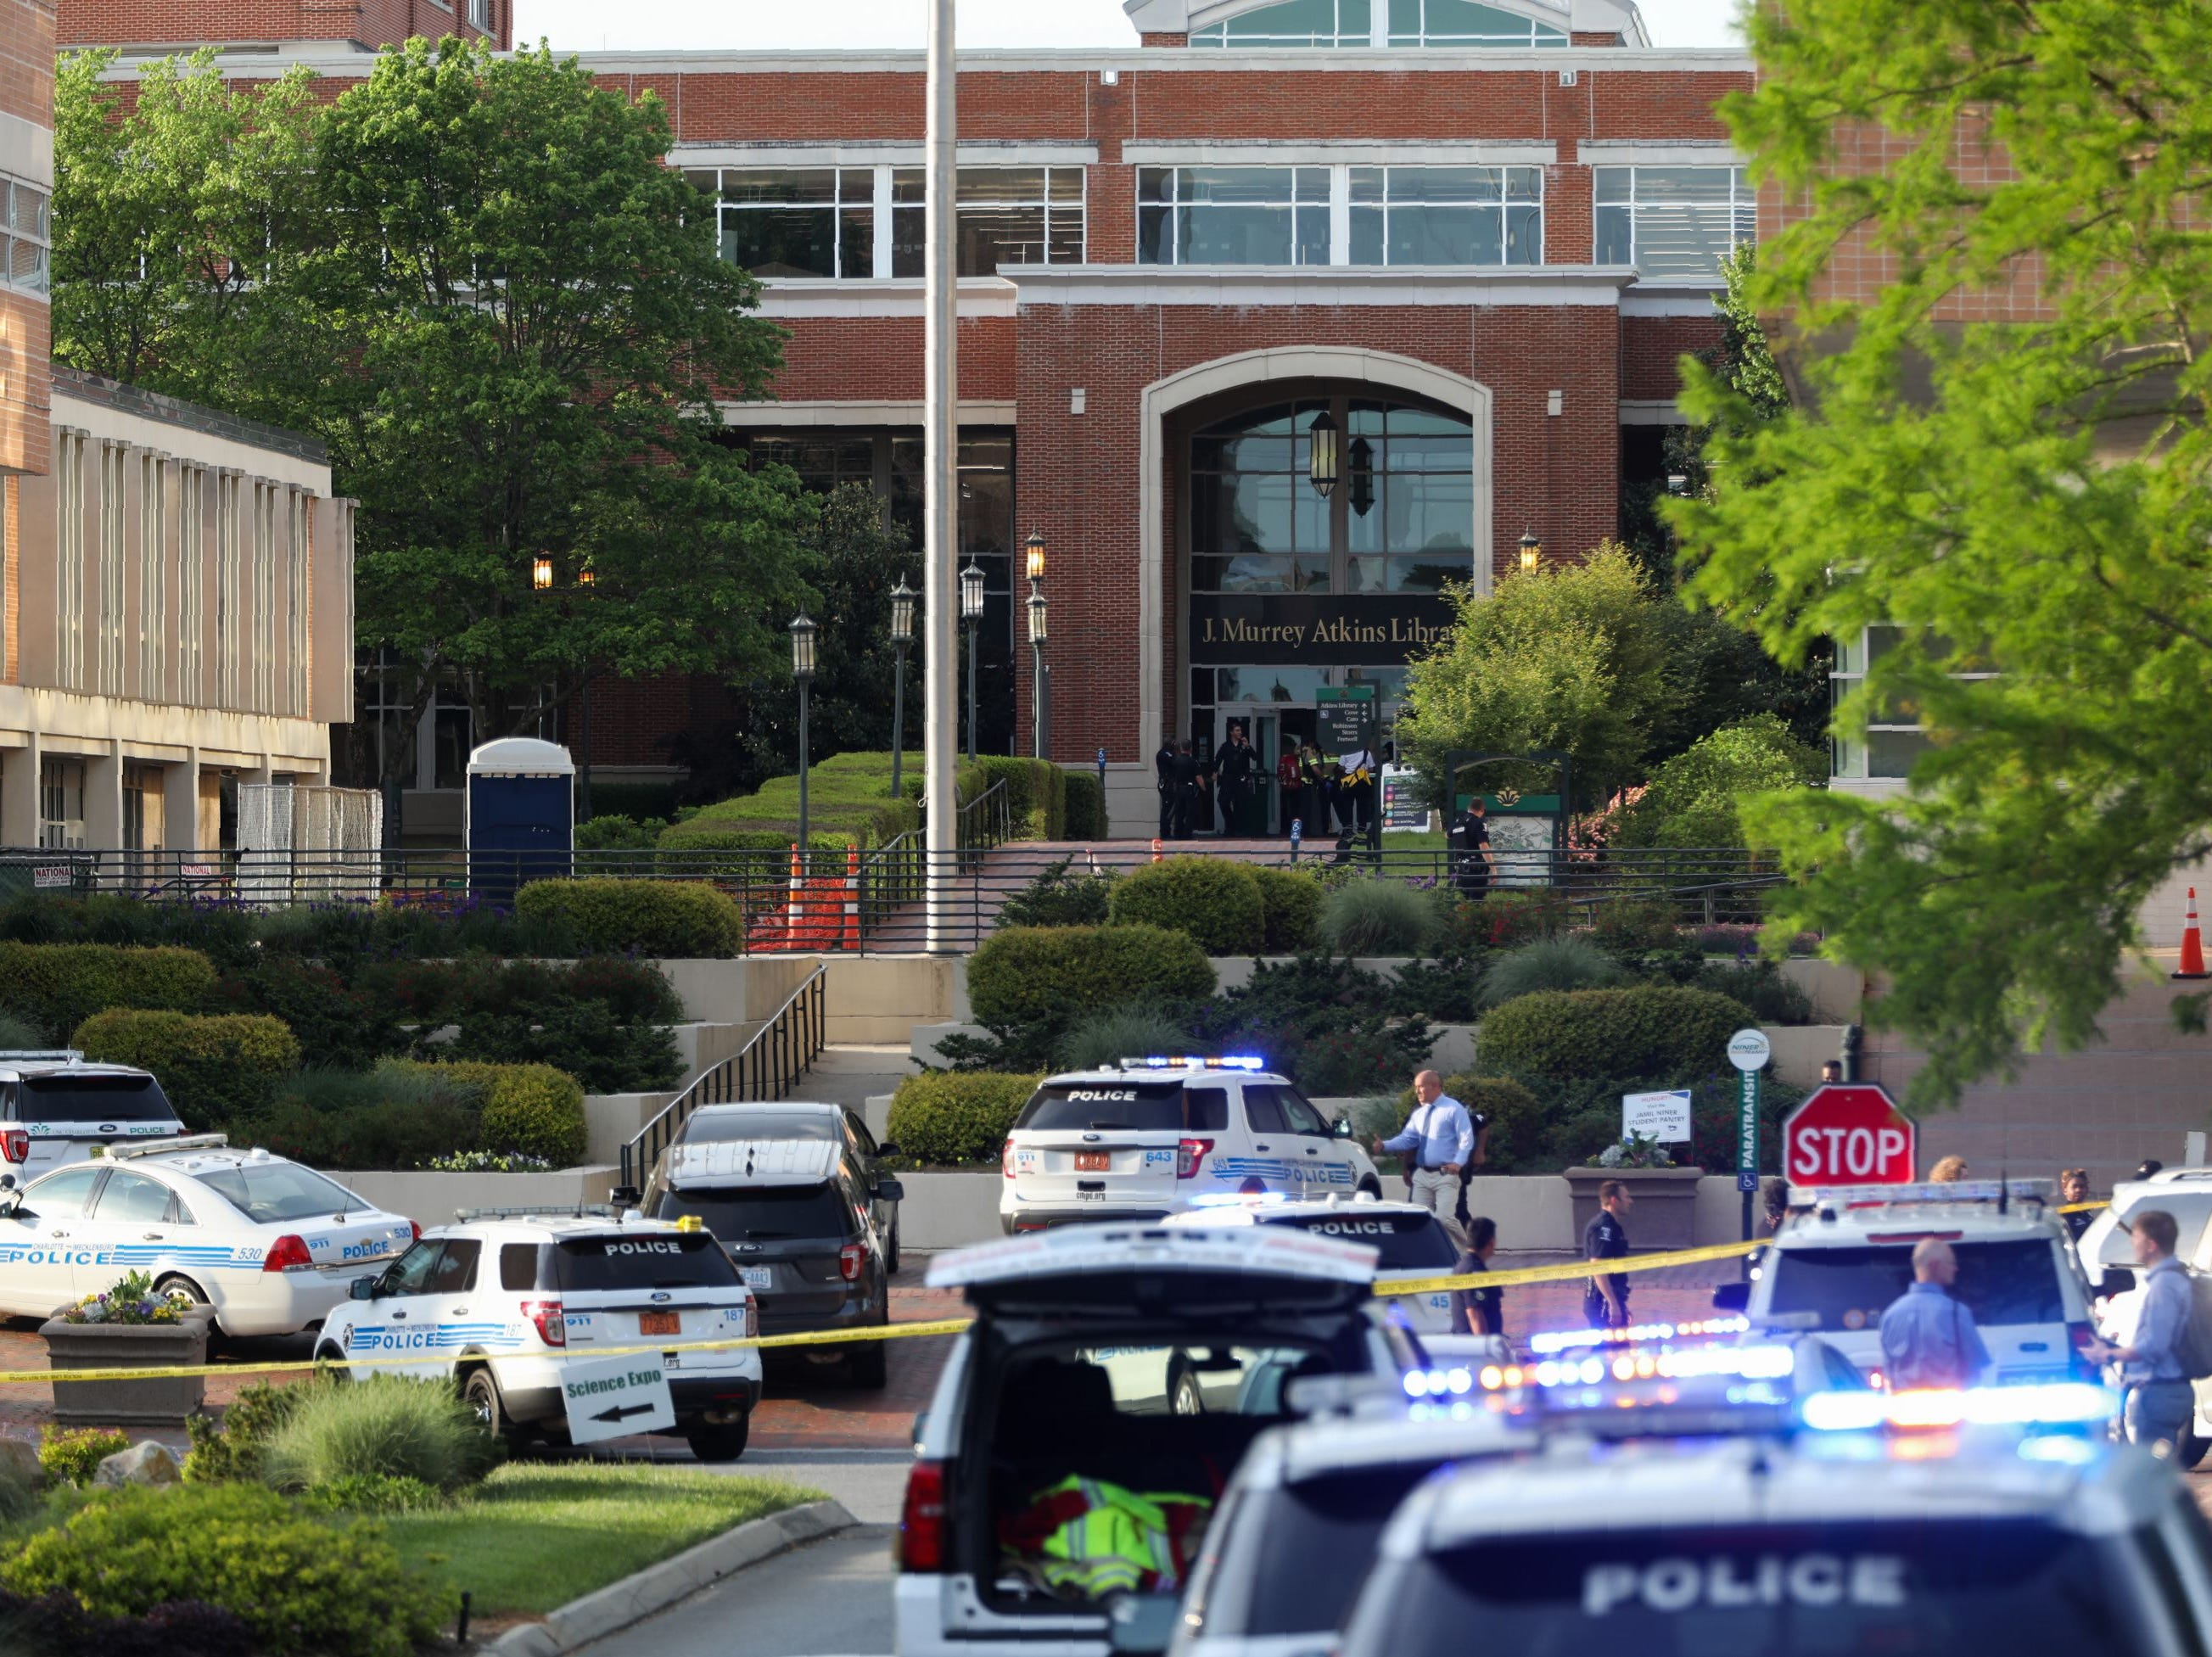 Police keeps the campus on lockdown after a shooting at the University of North Carolina Charlotte in University City, Charlotte, on April 30, 2019. - Six people were shot, two of them died on the University of North Carolina Charlotte campus. One person was taken into custody, according to police sources.